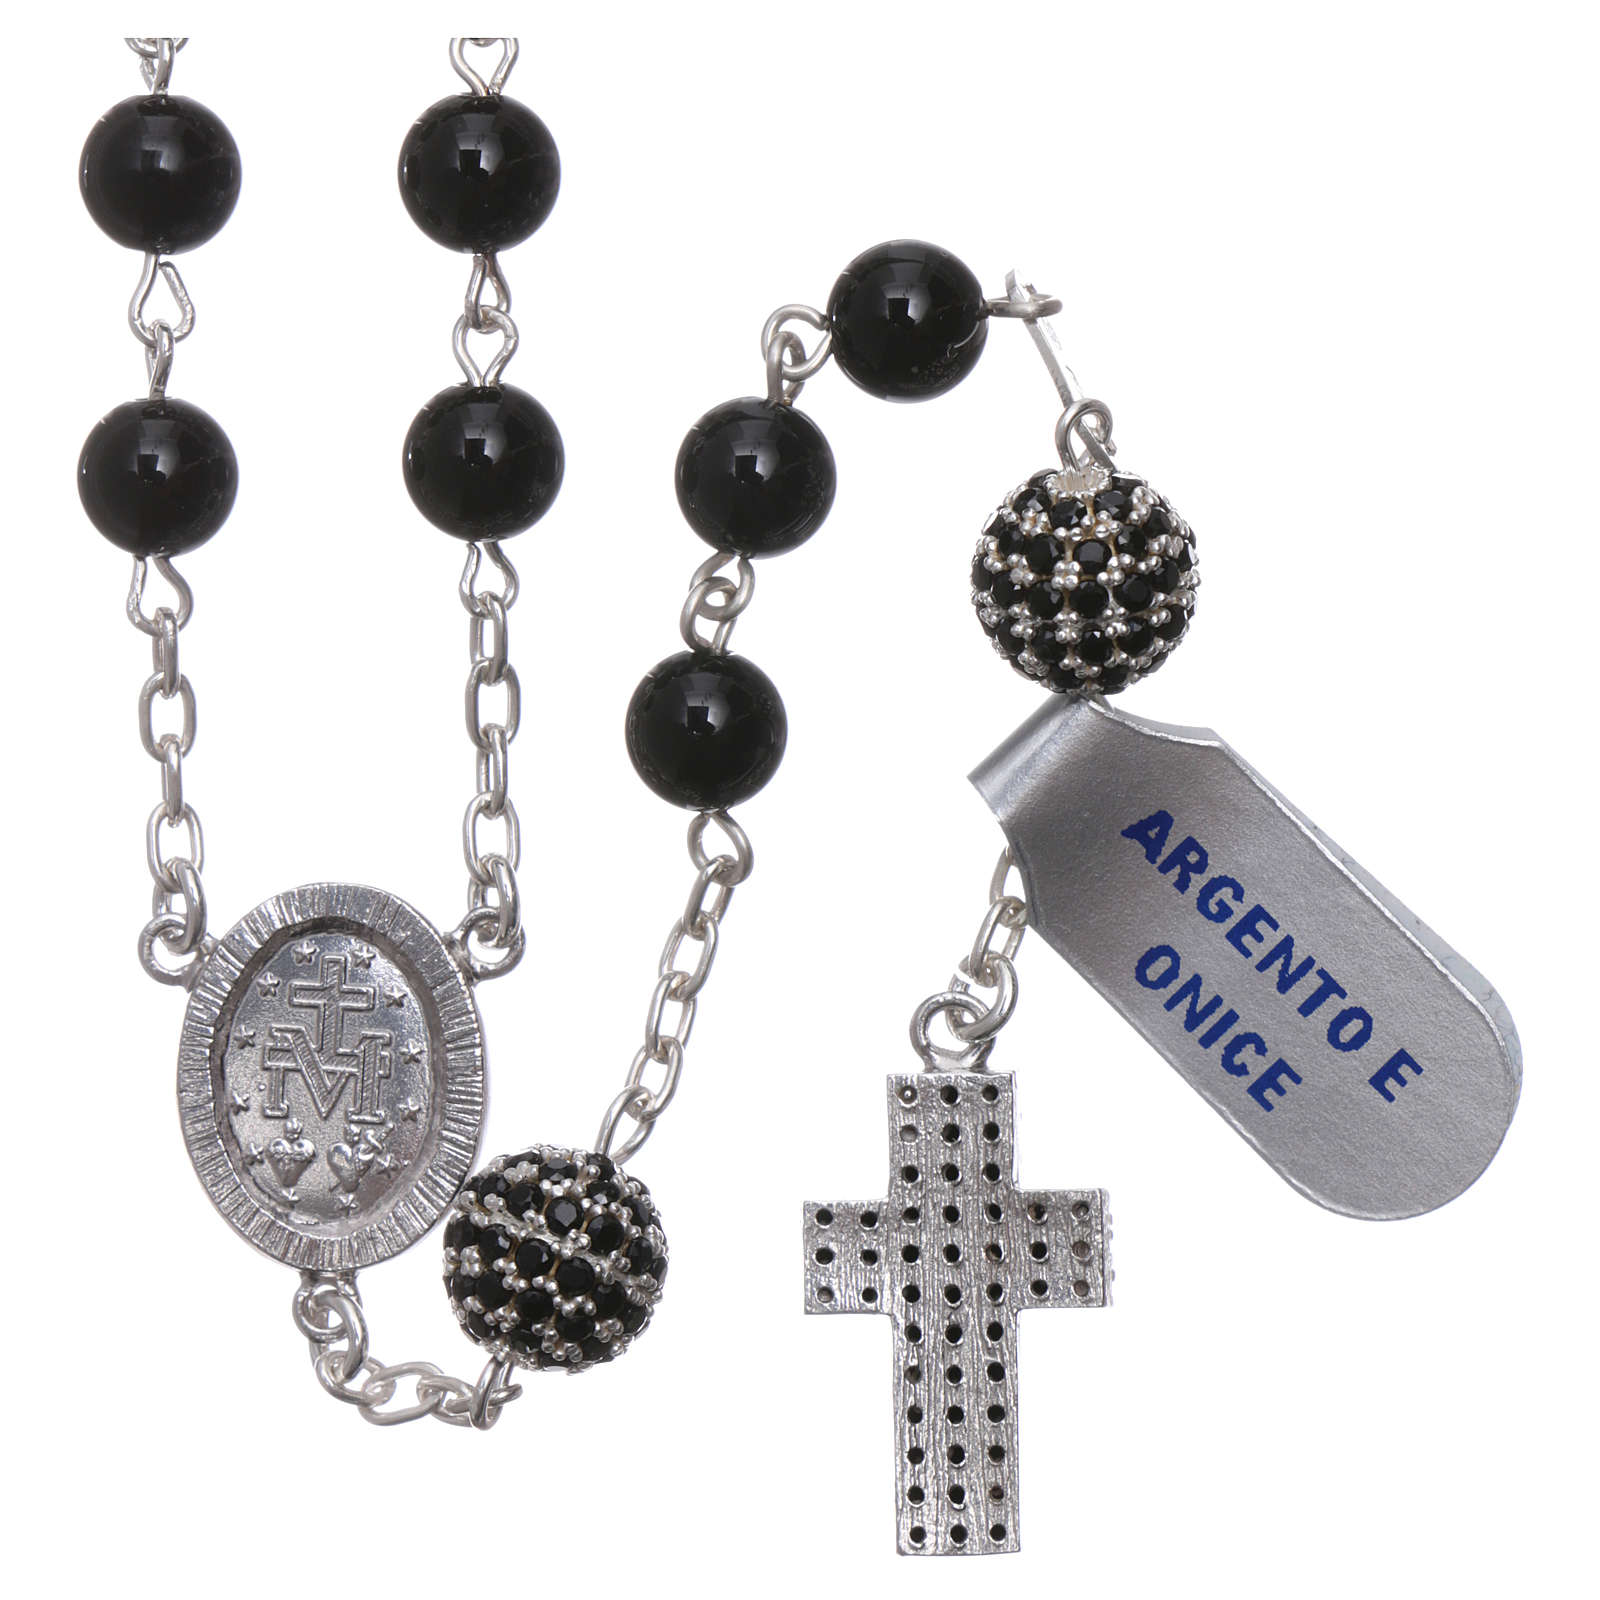 Rosary in 925 sterling silver decorated with zircons with 6 mm onyx beads, a medal and a pater 4